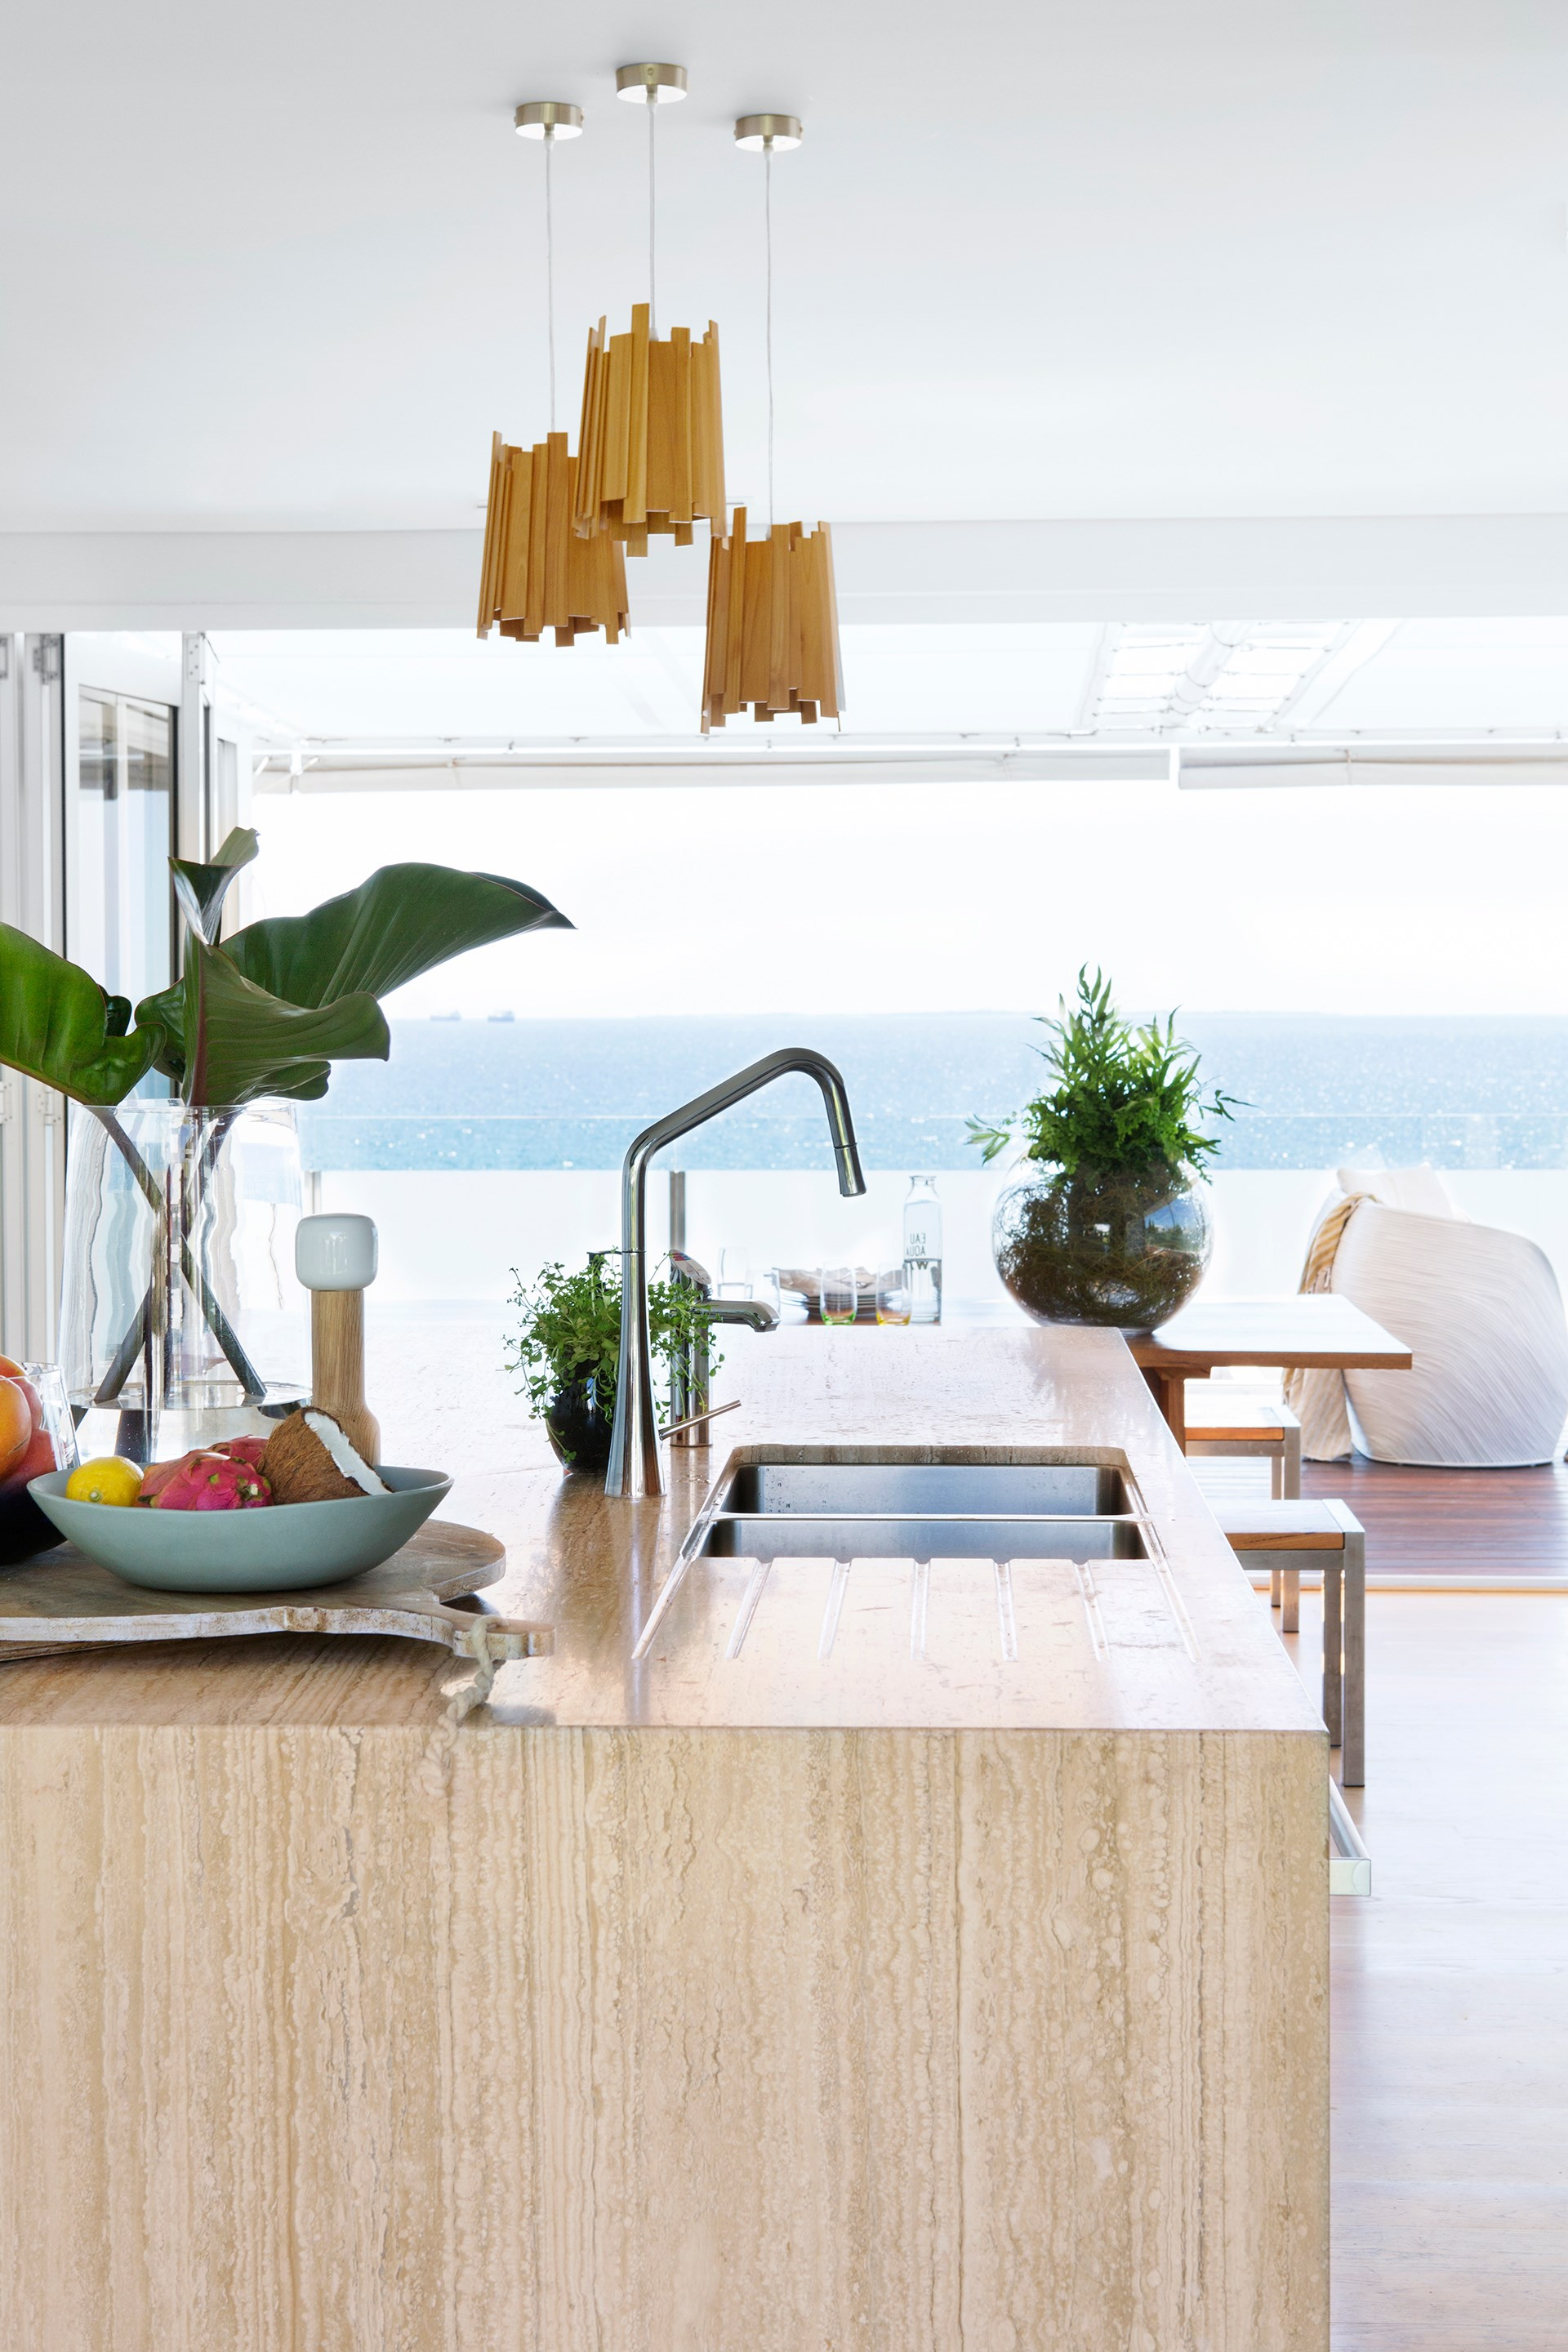 Reconfigured to take advantage of the jaw-dropping ocean views this [Perth beach house](http://www.homestolove.com.au/1990s-beach-house-revamp-3307) enjoys, the kitchen is now a stunning sandy-coloured jewel. *Photo: Angelita Bonetti*